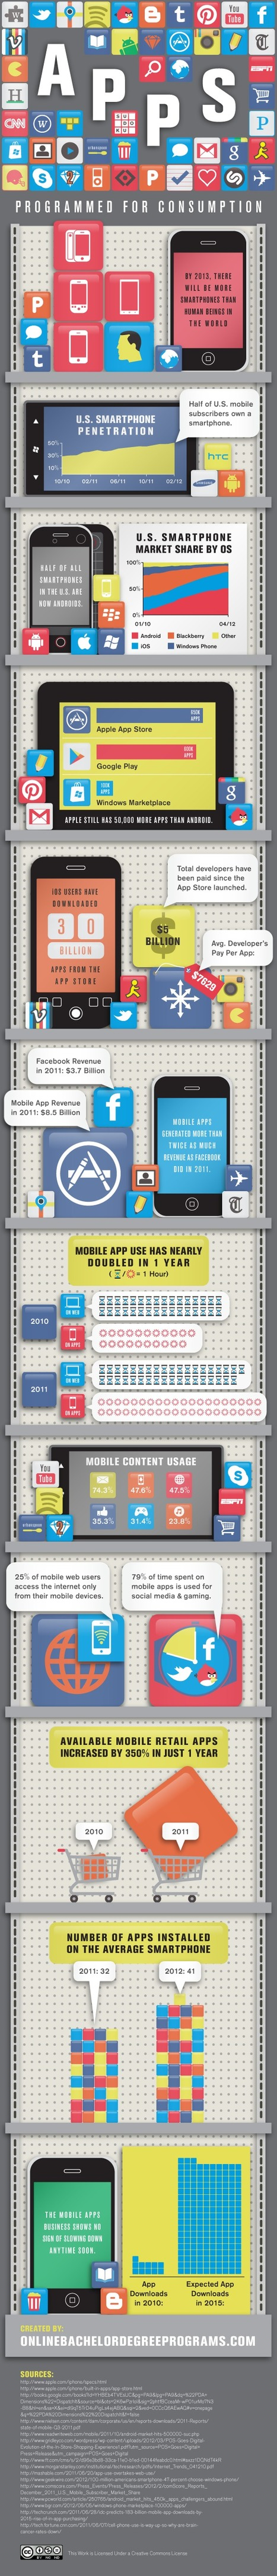 Mobile Web is Not COMING It's HERE Just In Case You Haven't Noticed [Infographic] | Marketing&Advertising | Scoop.it